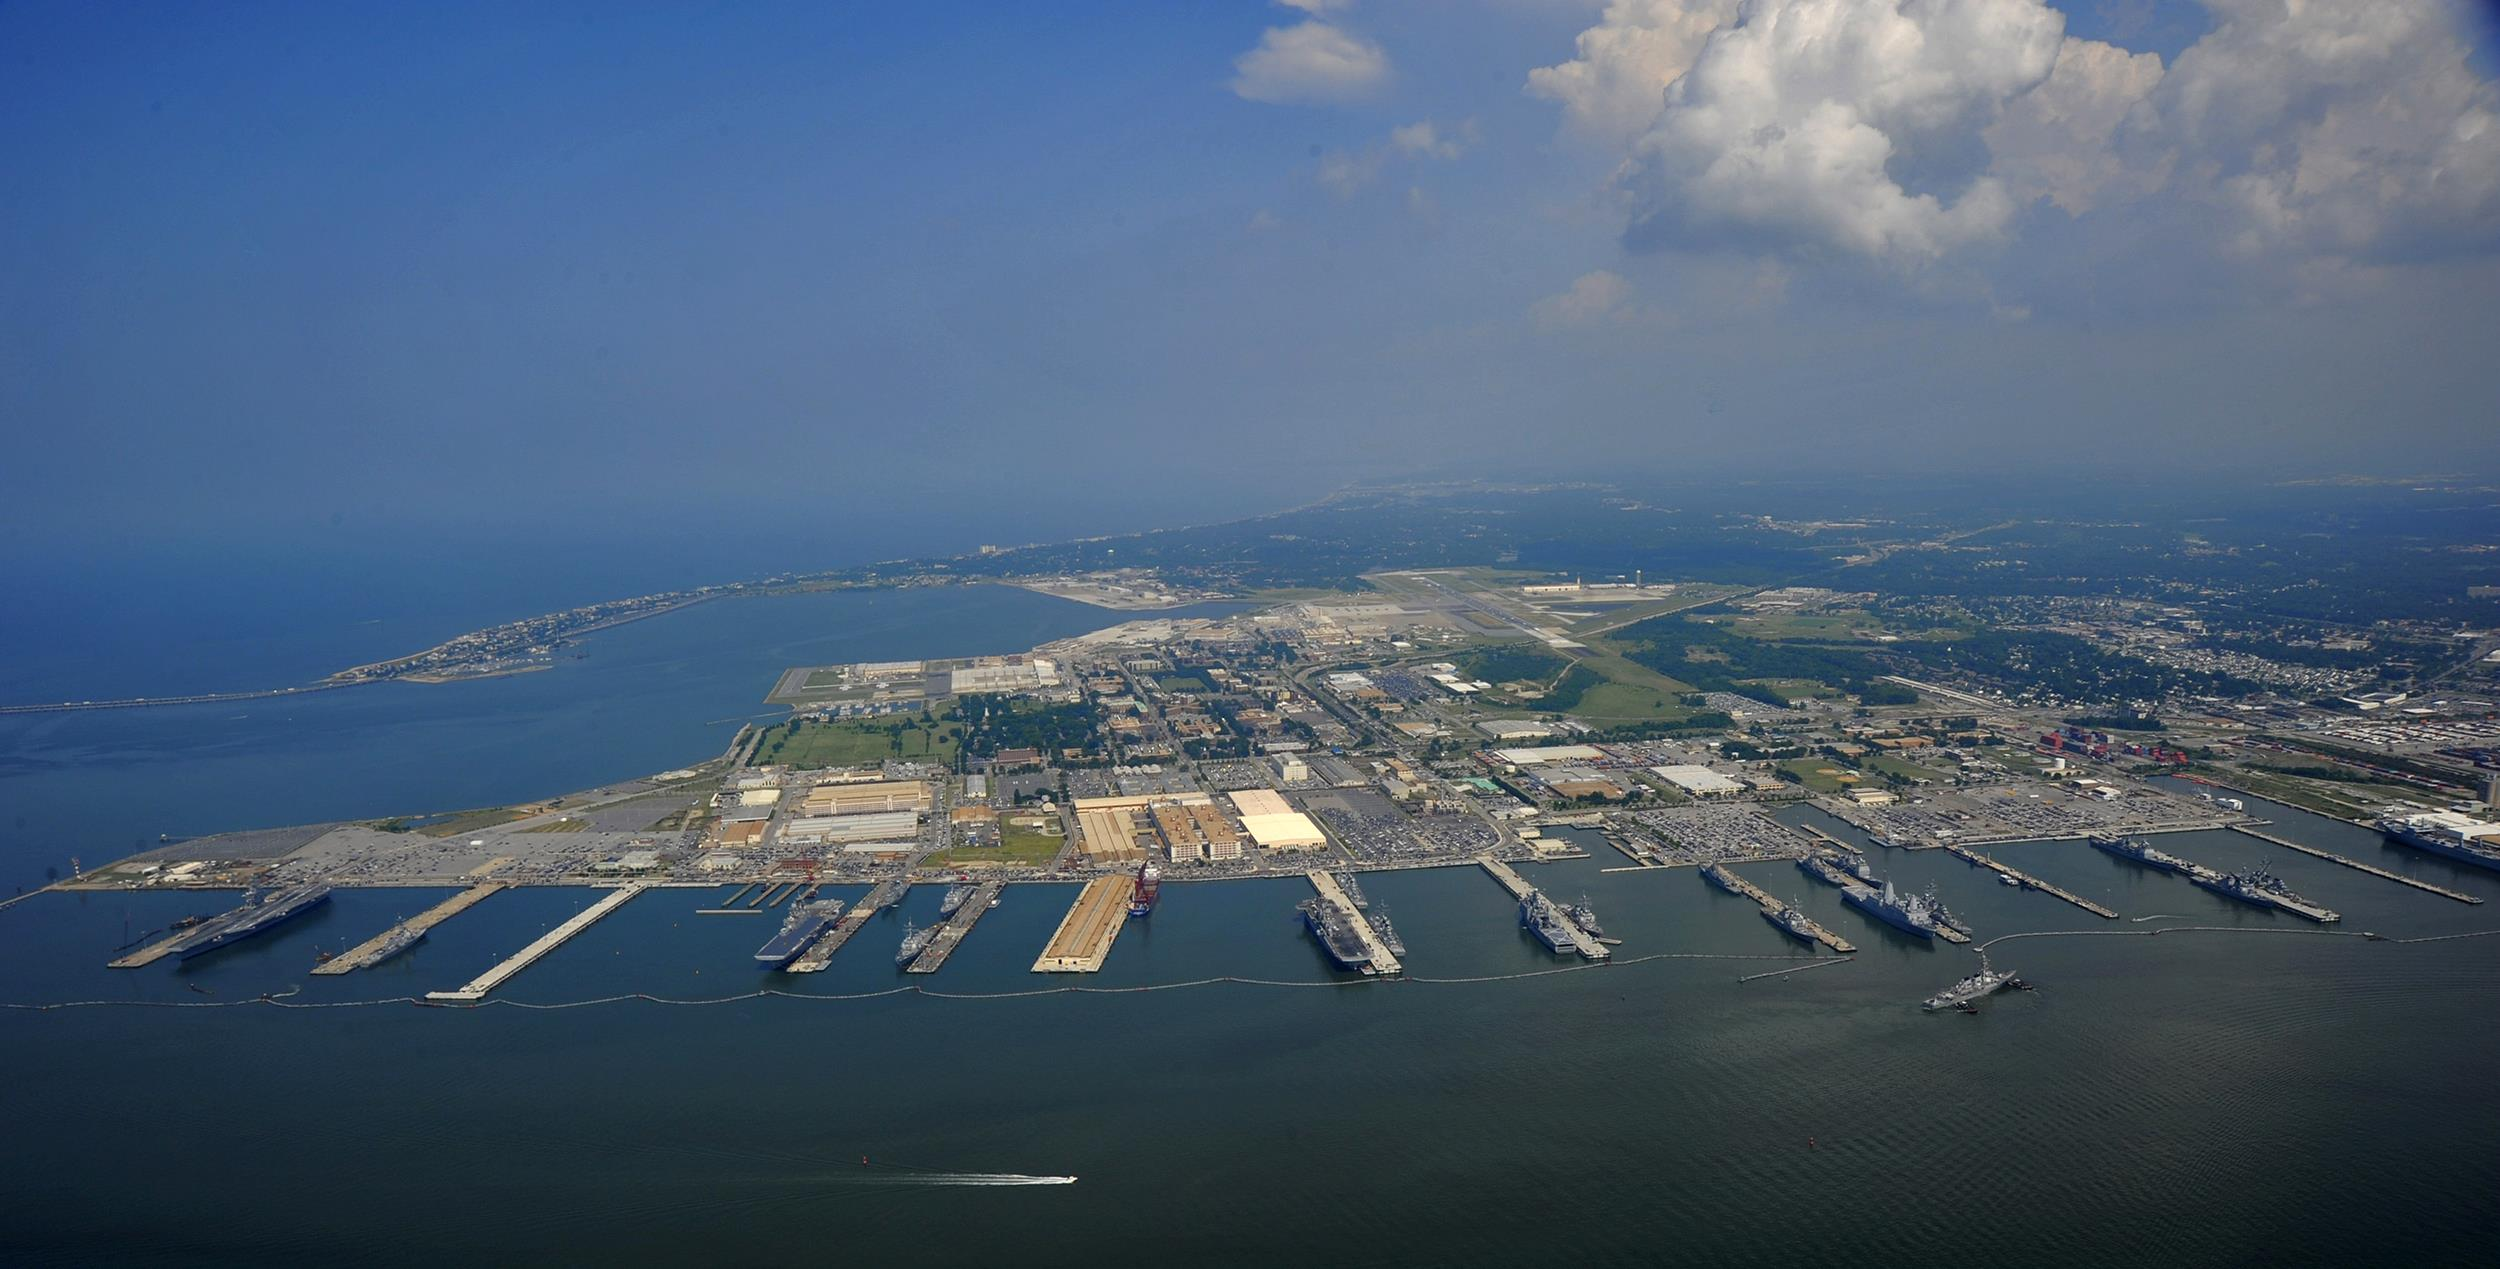 Image: An aerial view of Naval Station Norfolk, Virginia, the largest naval base in the world